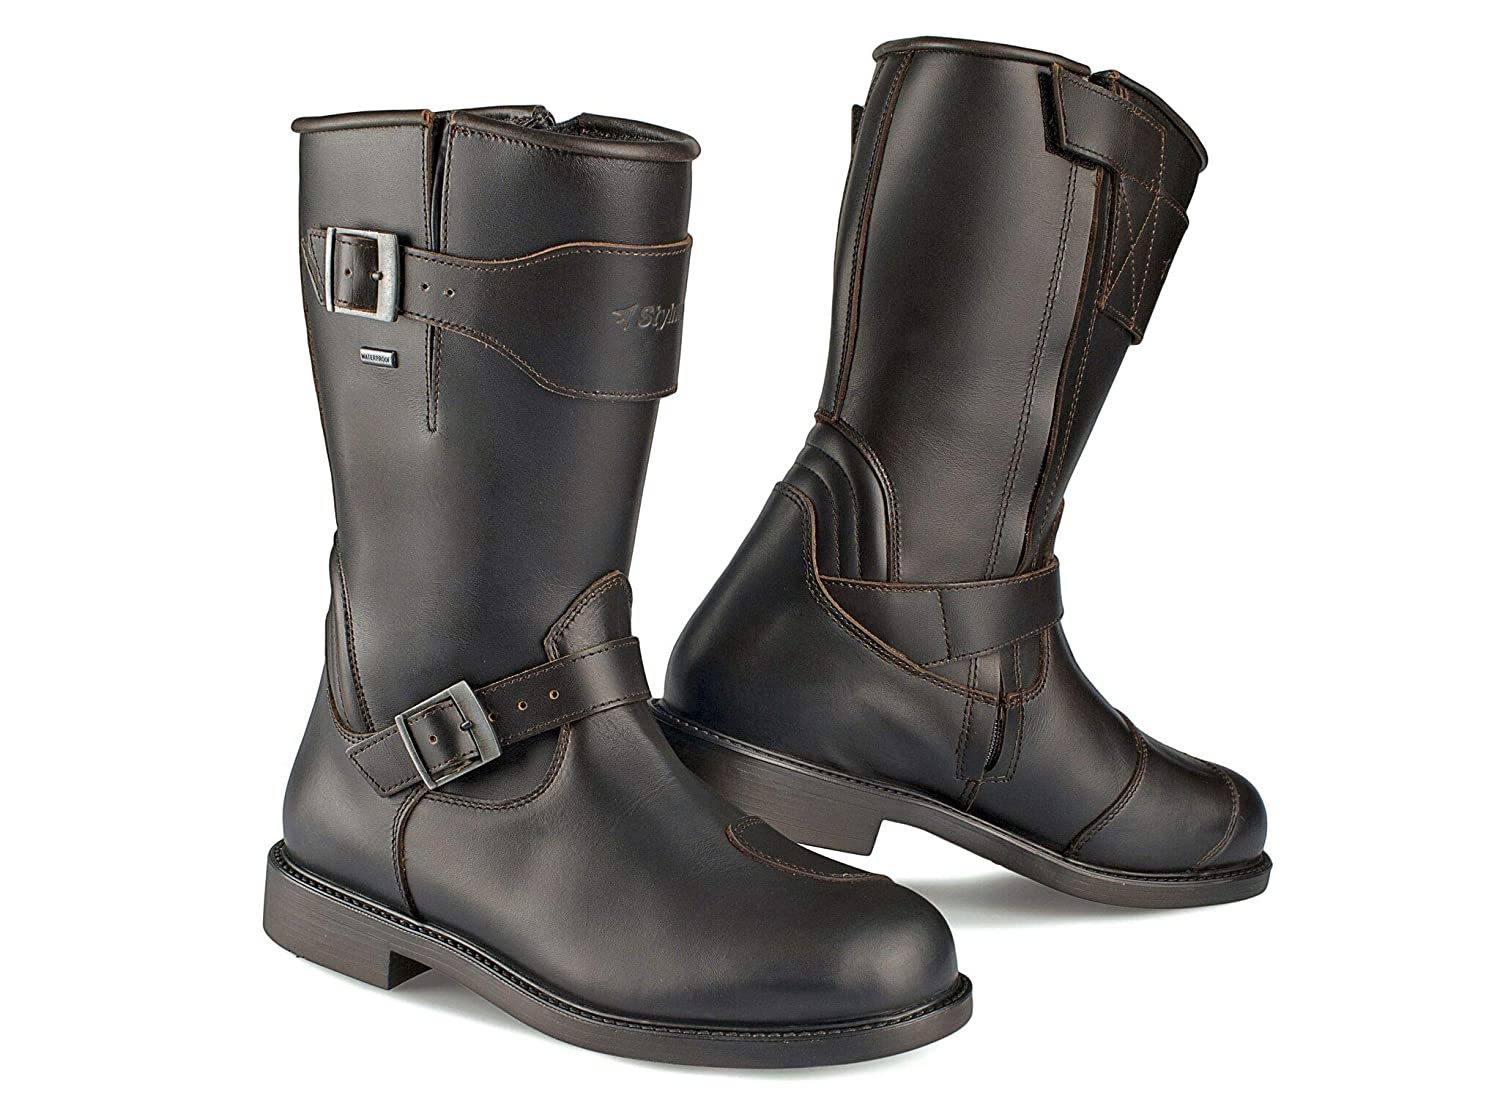 84522e2ae8 Amazon.com  Stylmartin Men s Legend Touring Boots Brown Size  US-9 ...